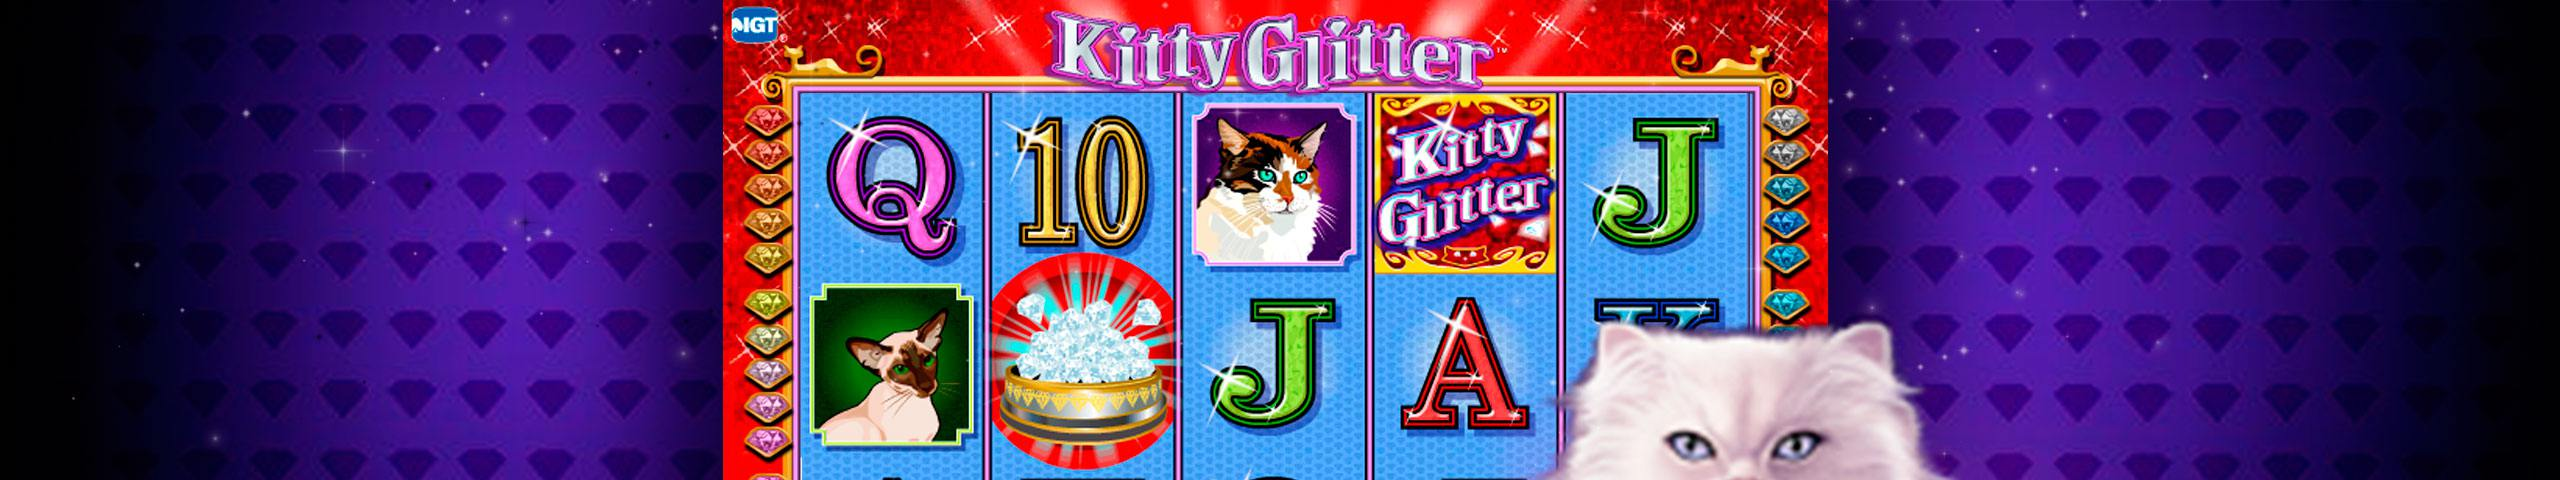 Kitty Glitter spelautomater IGT (WagerWorks)  wyrmspel.com